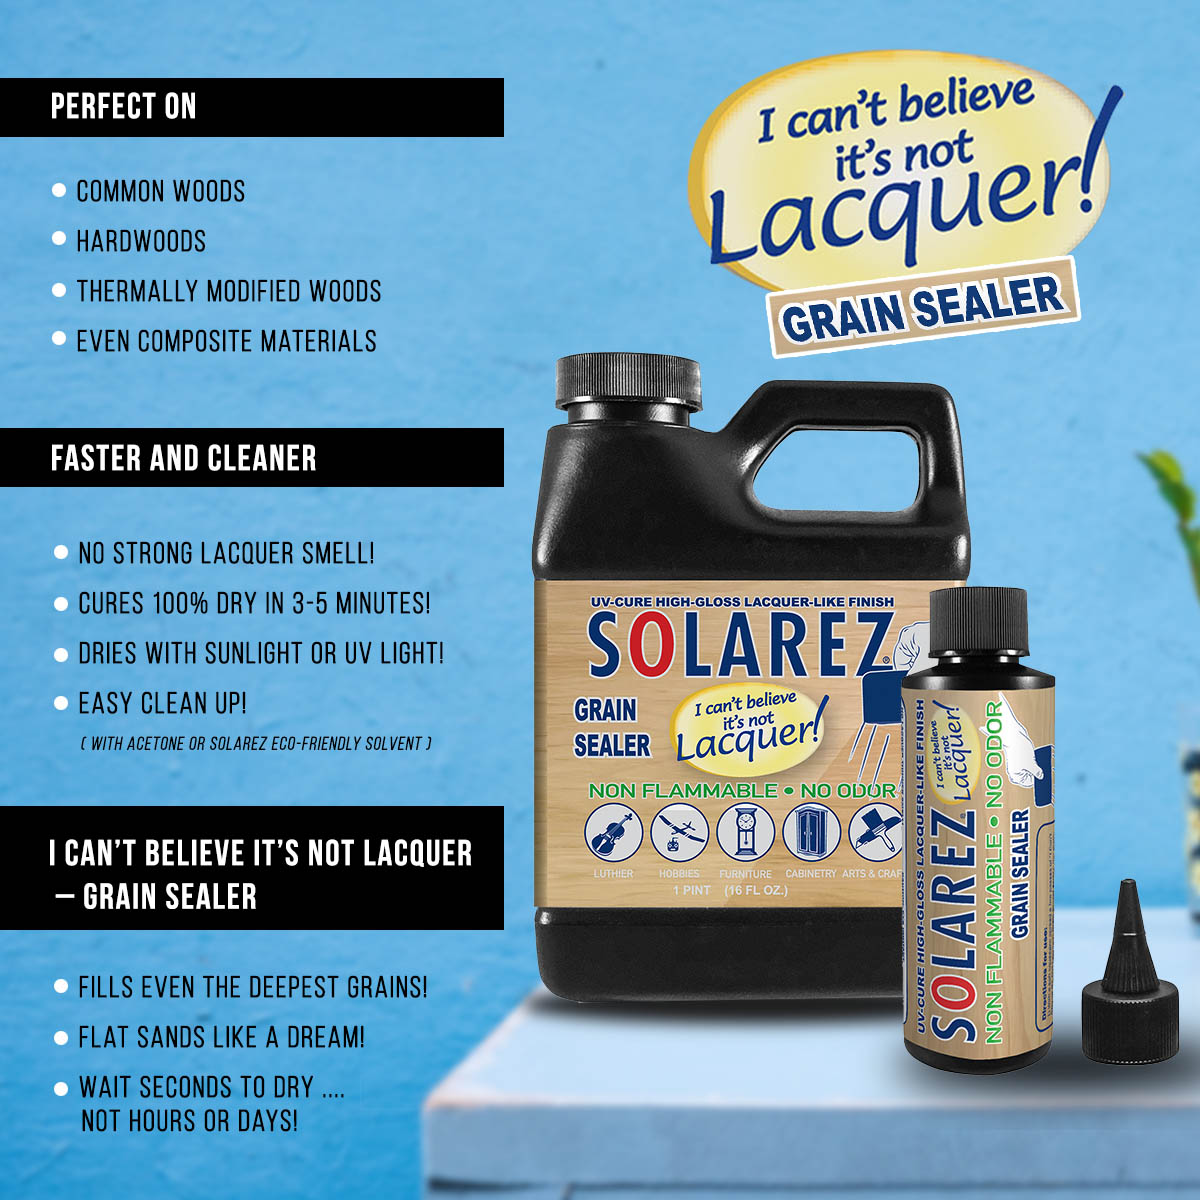 Grain Sealer I Can't Believe It's Not Lacquer | Solarez UV